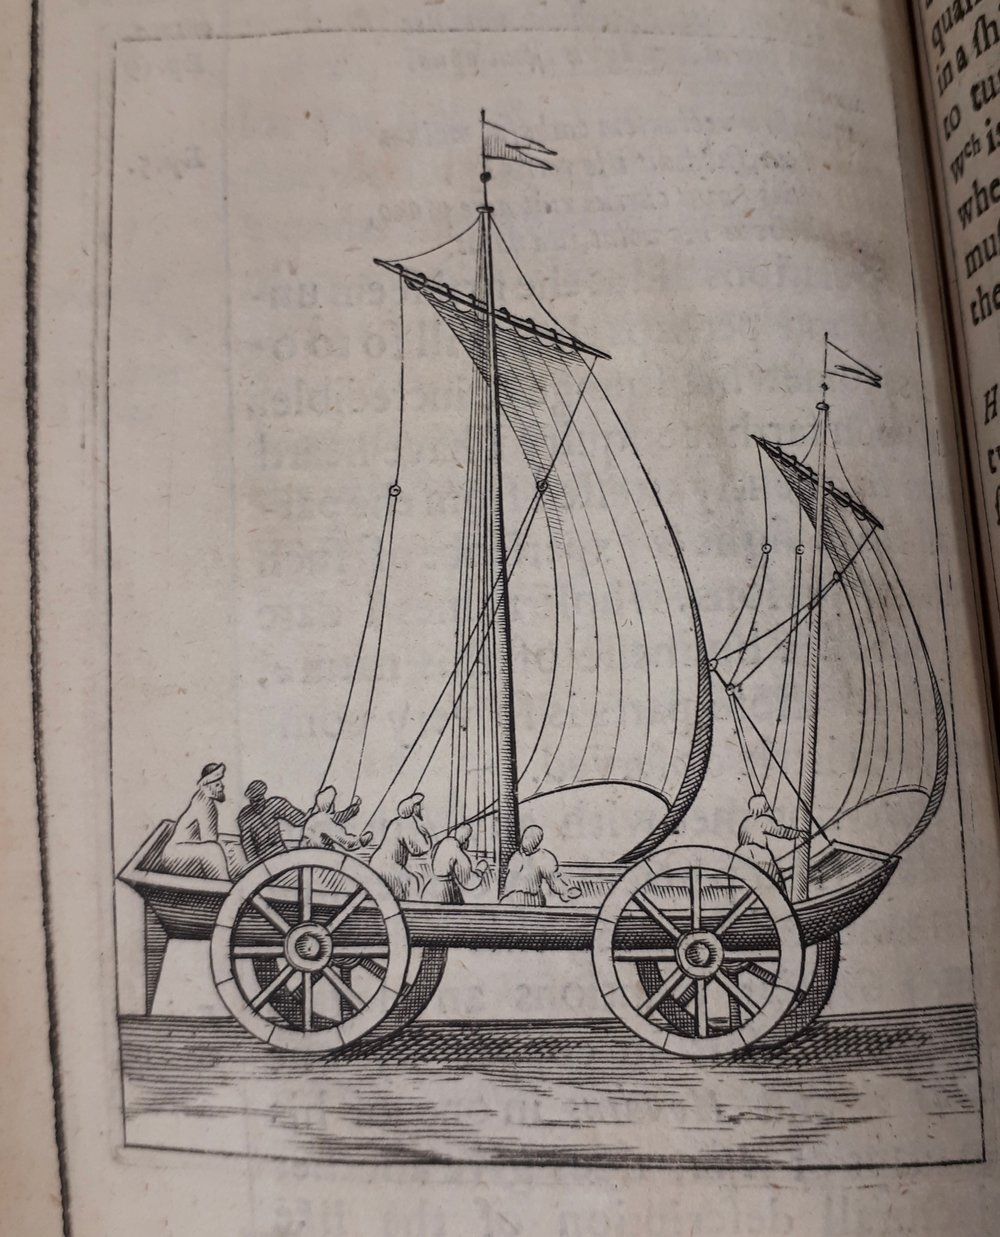 Unfortunately no illustrations of the submarine or flying chariot appear in the text, but this image and the next are of the 'sailing chariot' which Wilkins also discusses.